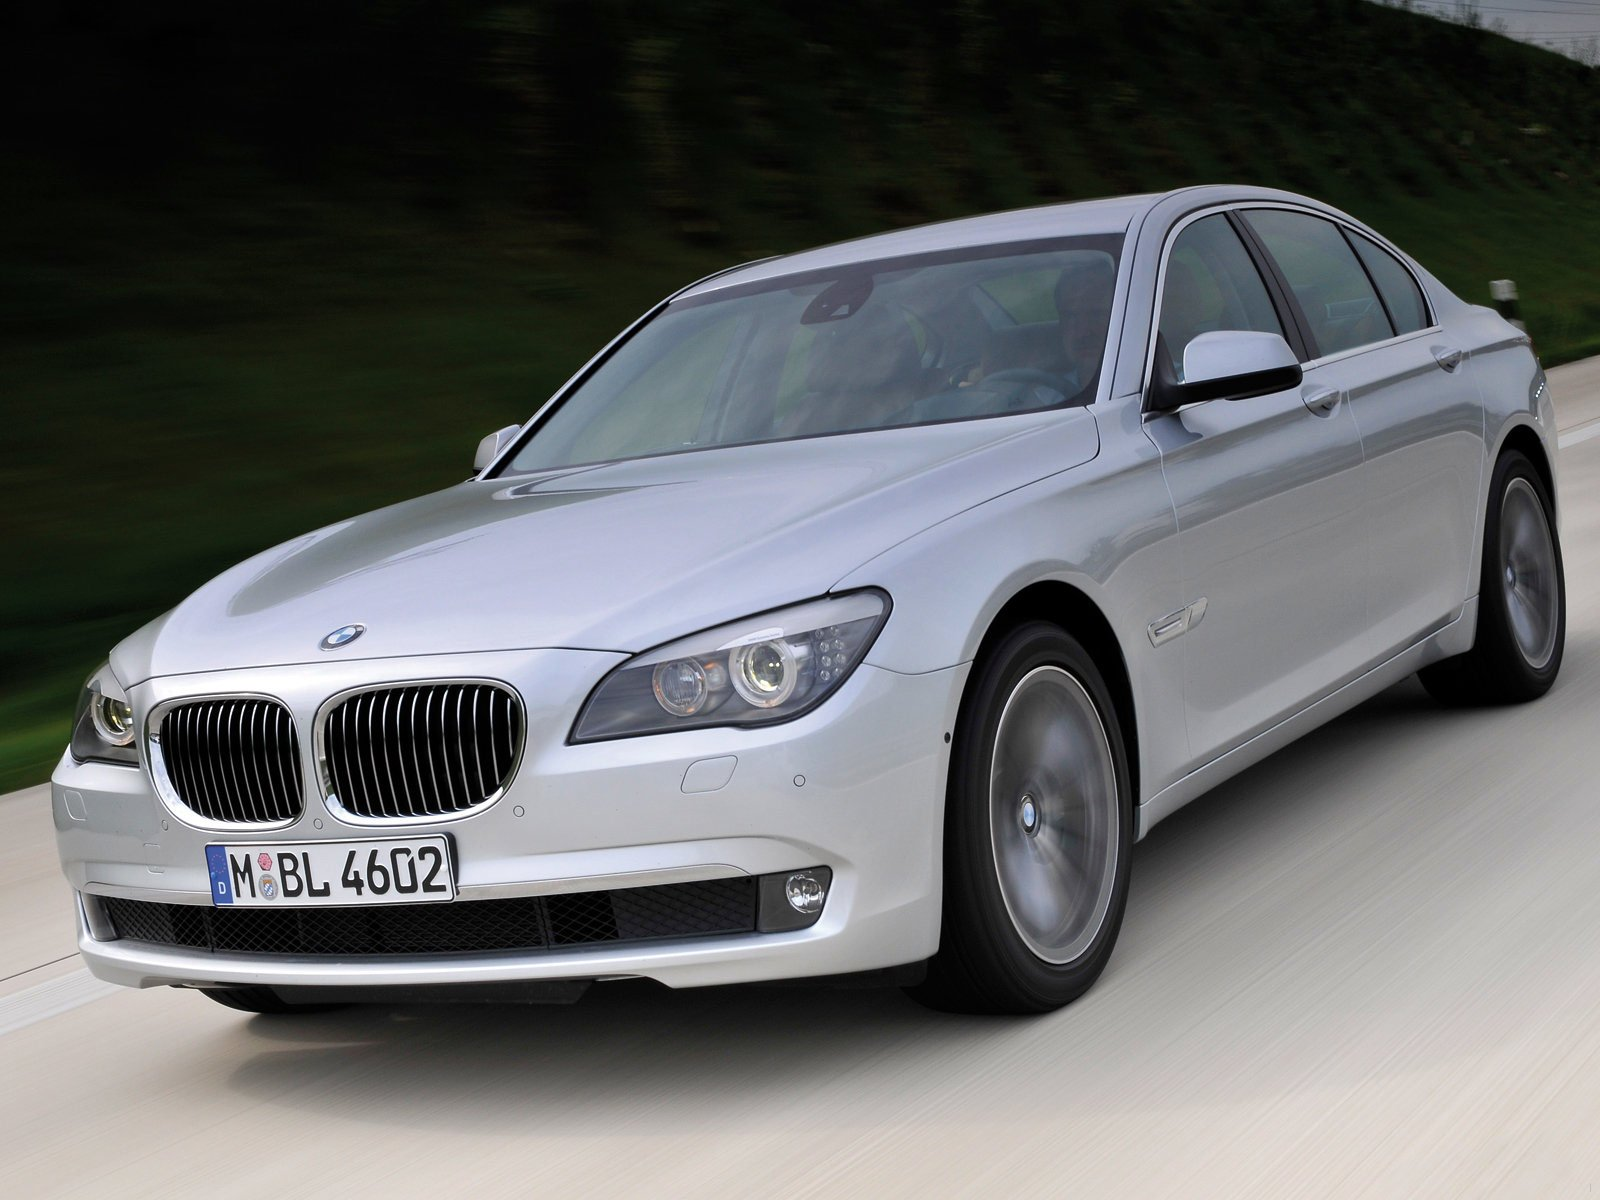 Latest Gambar Mobil Bmw 2009 Bmw 730D Free Download